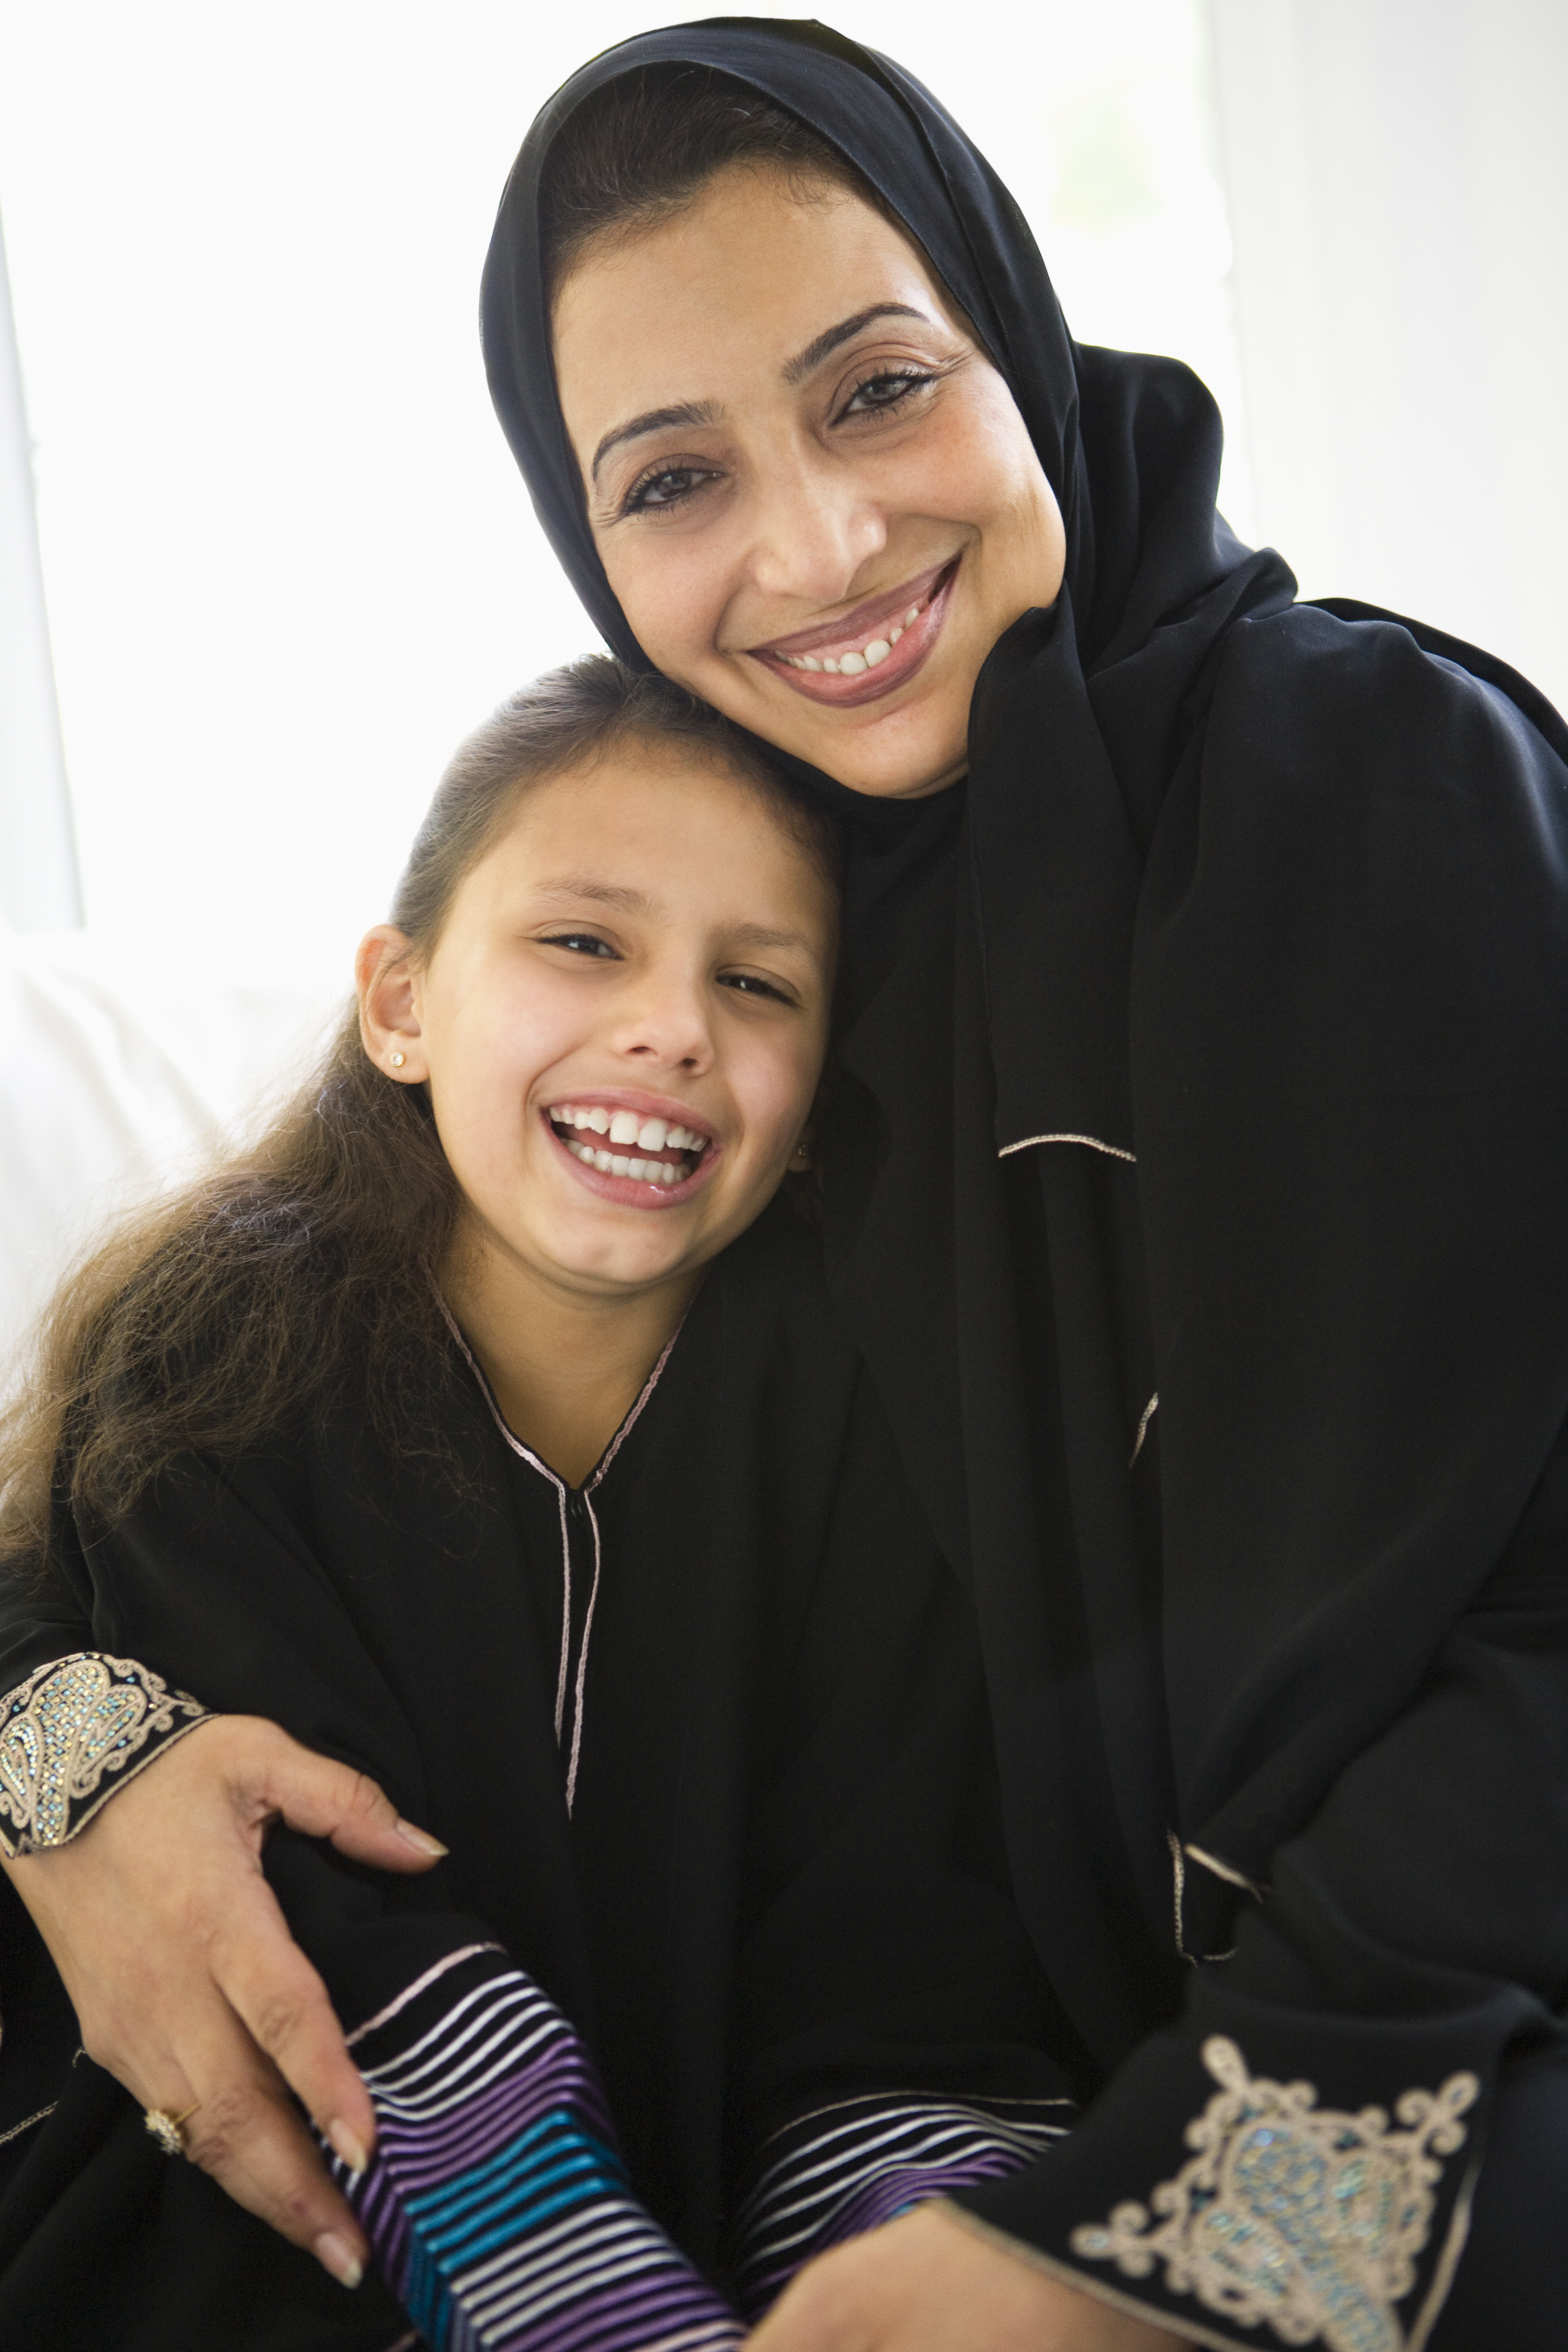 A Middle Eastern woman with her granddaughter